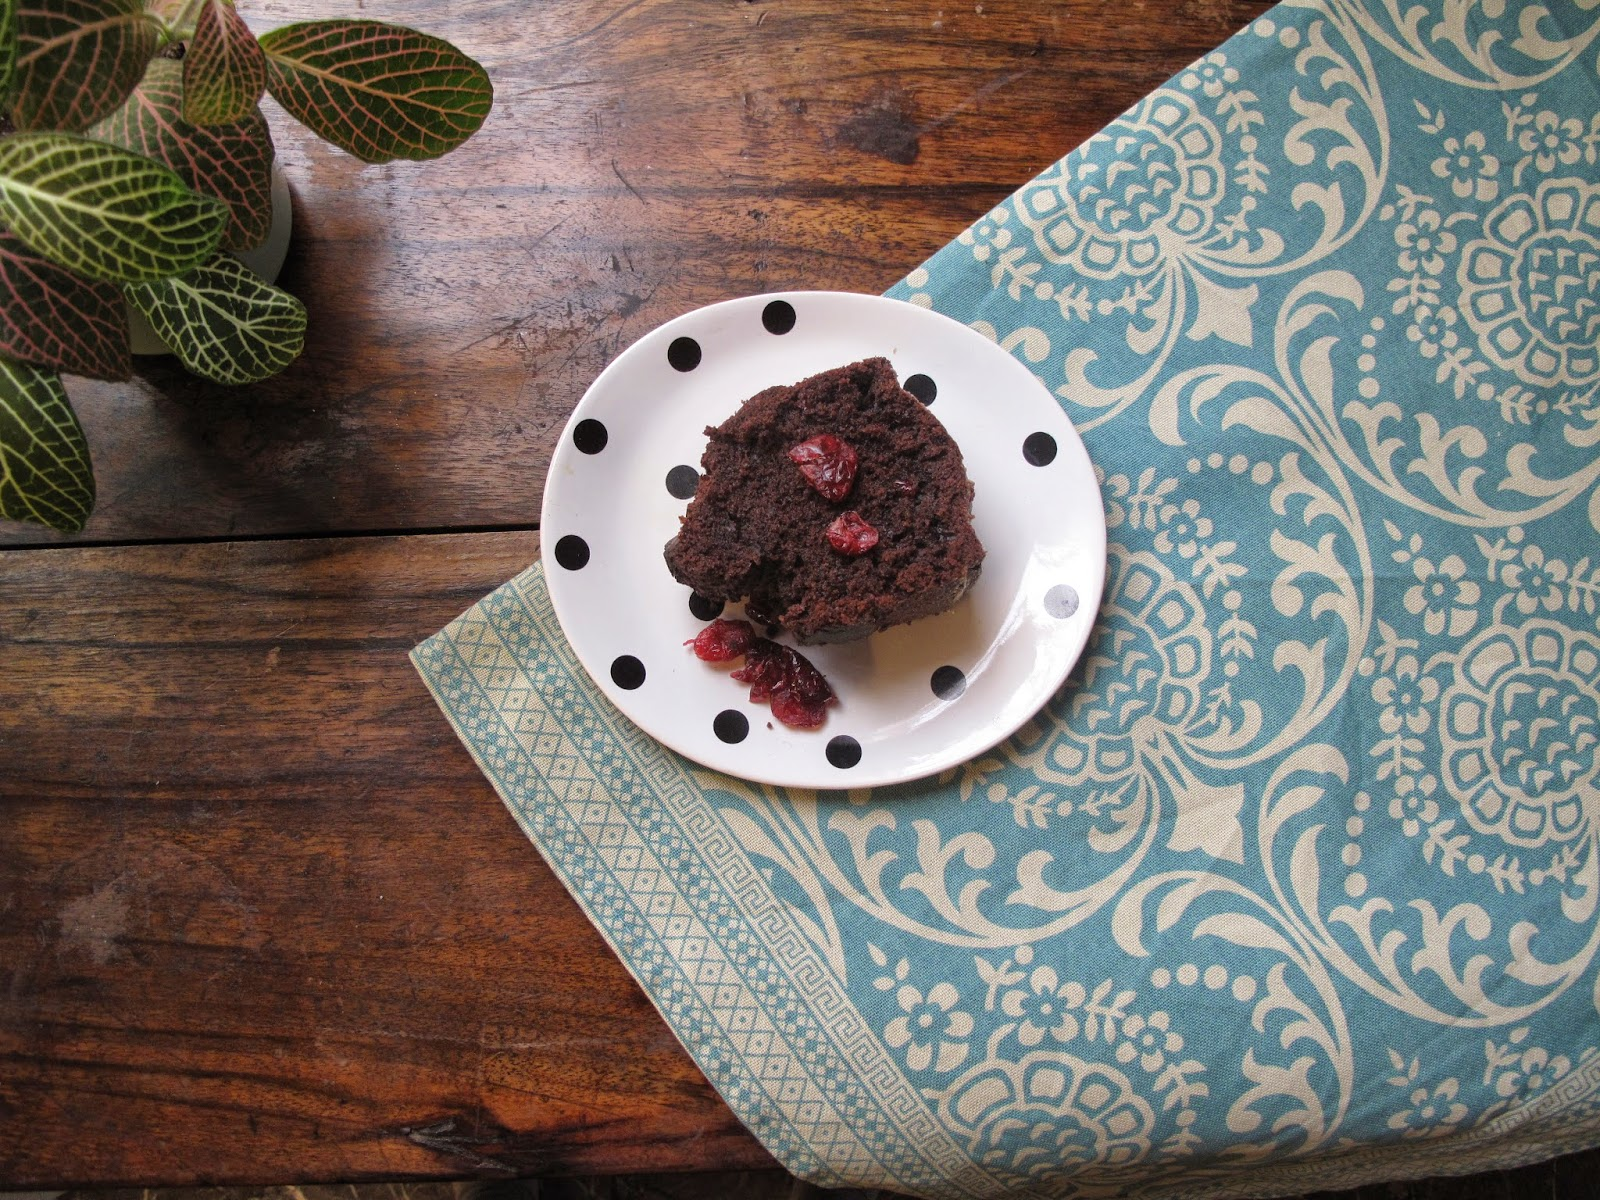 Chocolate beetroot cranberries cake